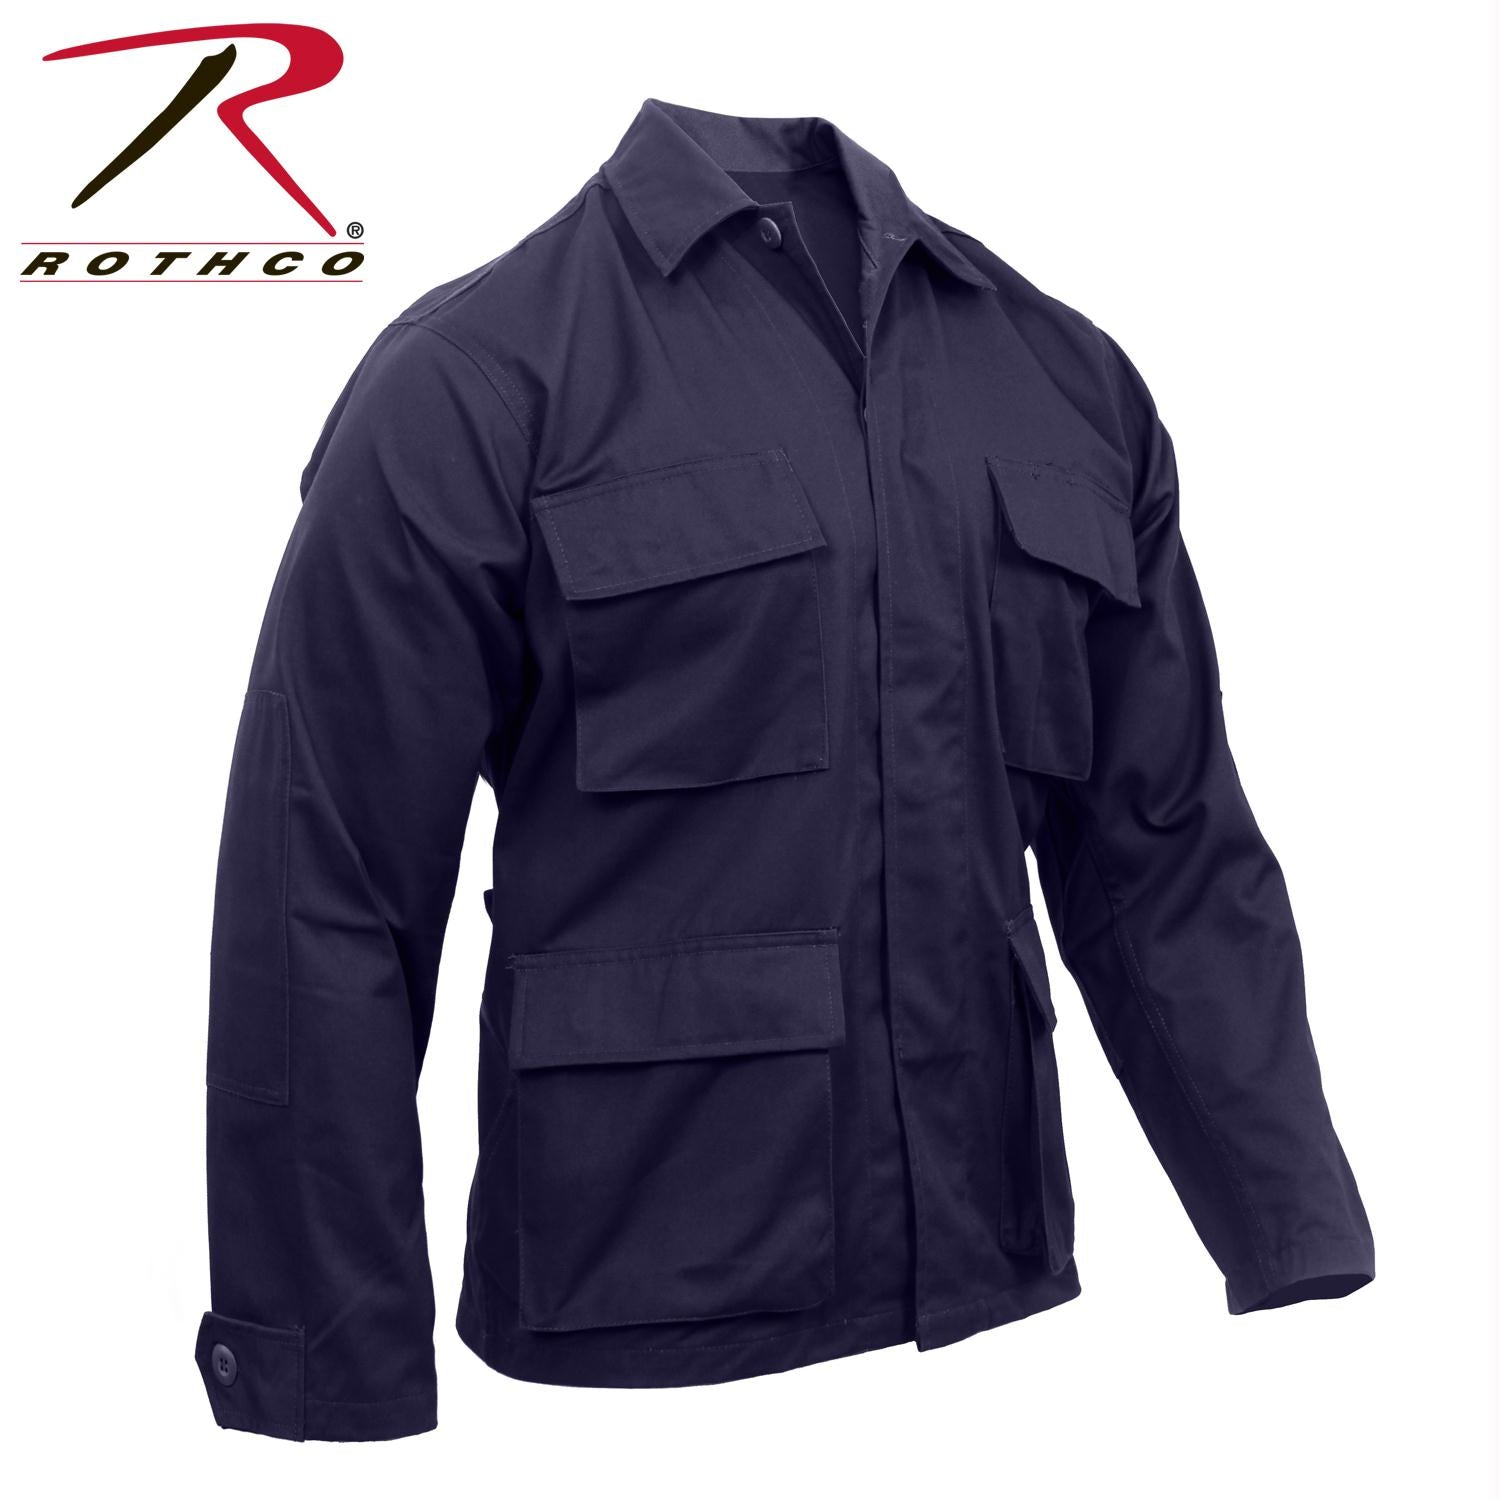 Rothco Poly/Cotton Twill Solid BDU Shirts - Navy Blue / S